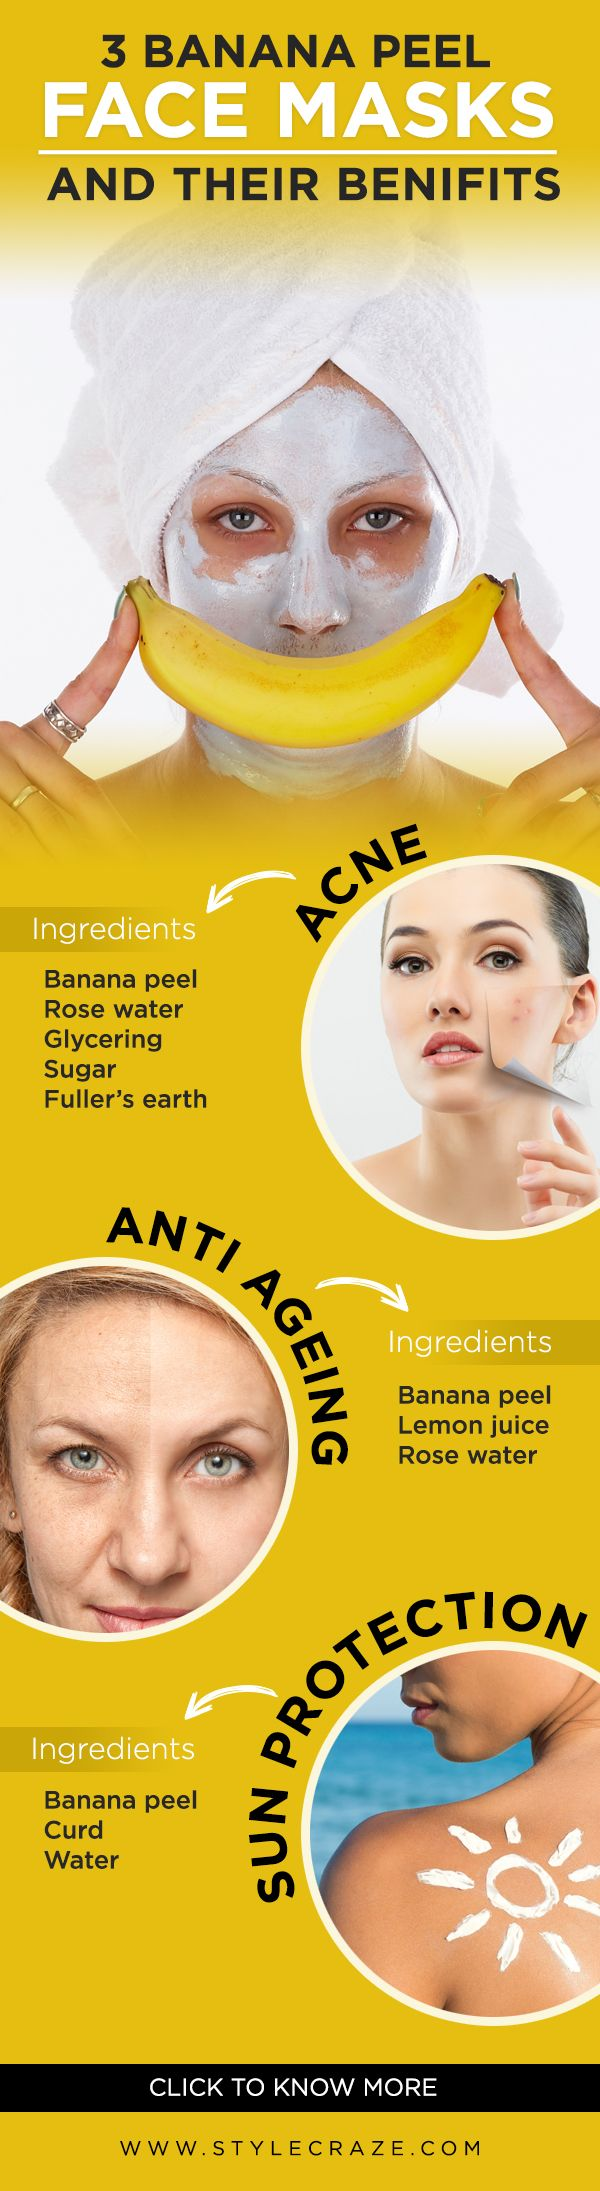 Types Of Banana Peel Masks And Their Benefits #facemasks